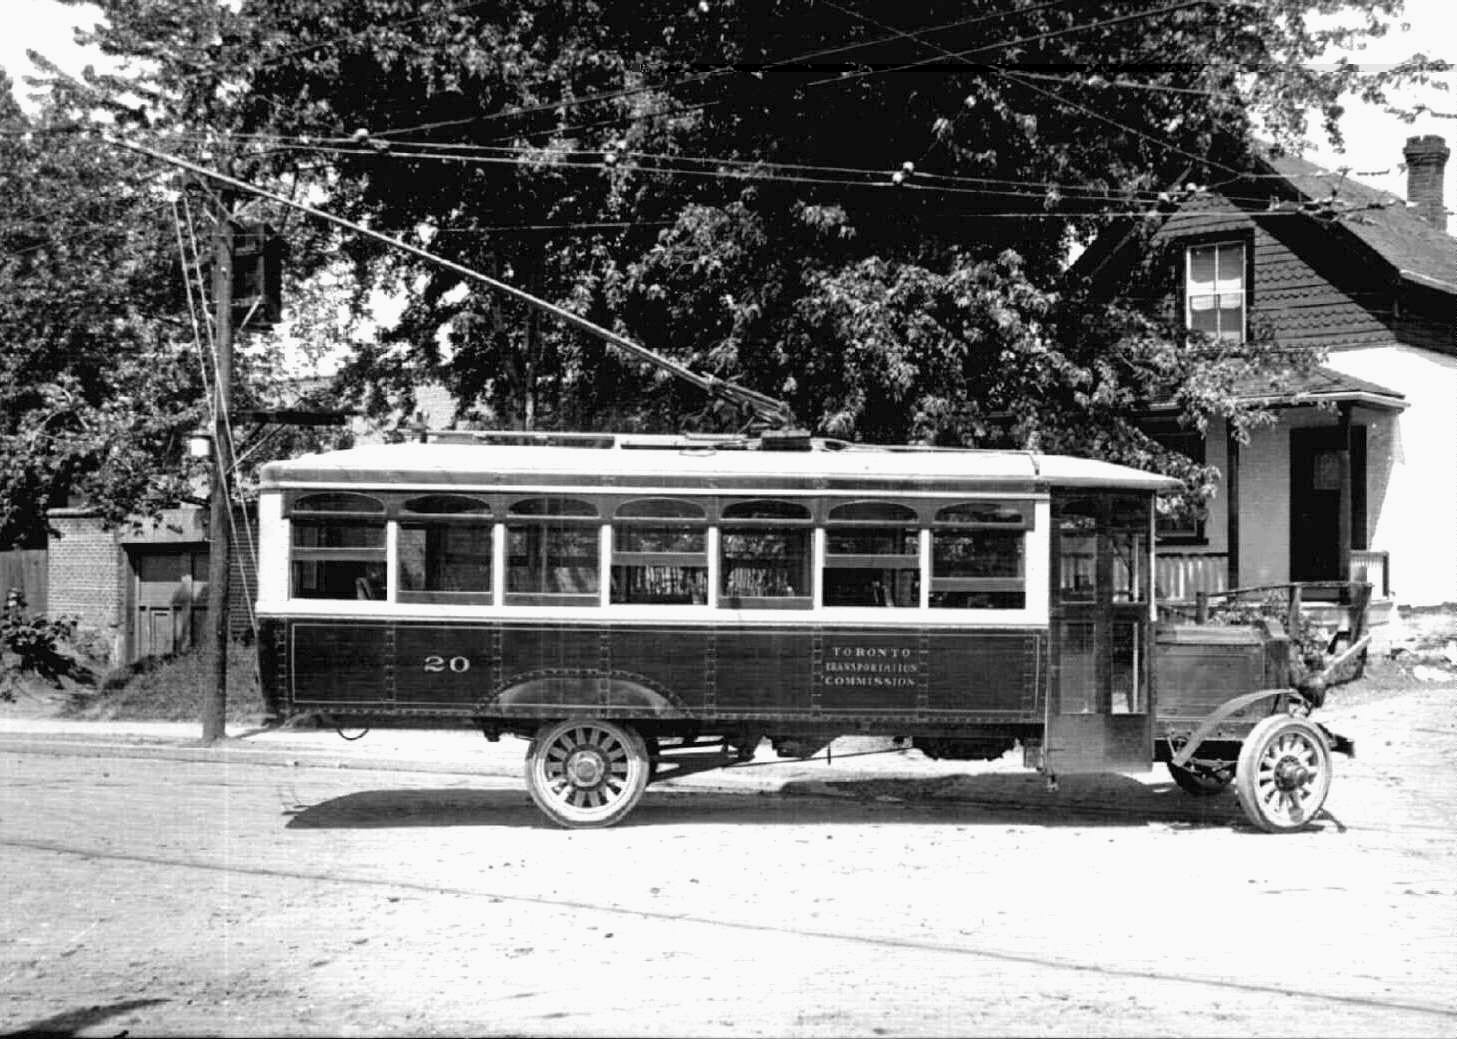 The History Of Toronto S Trolley Buses 1922 1993